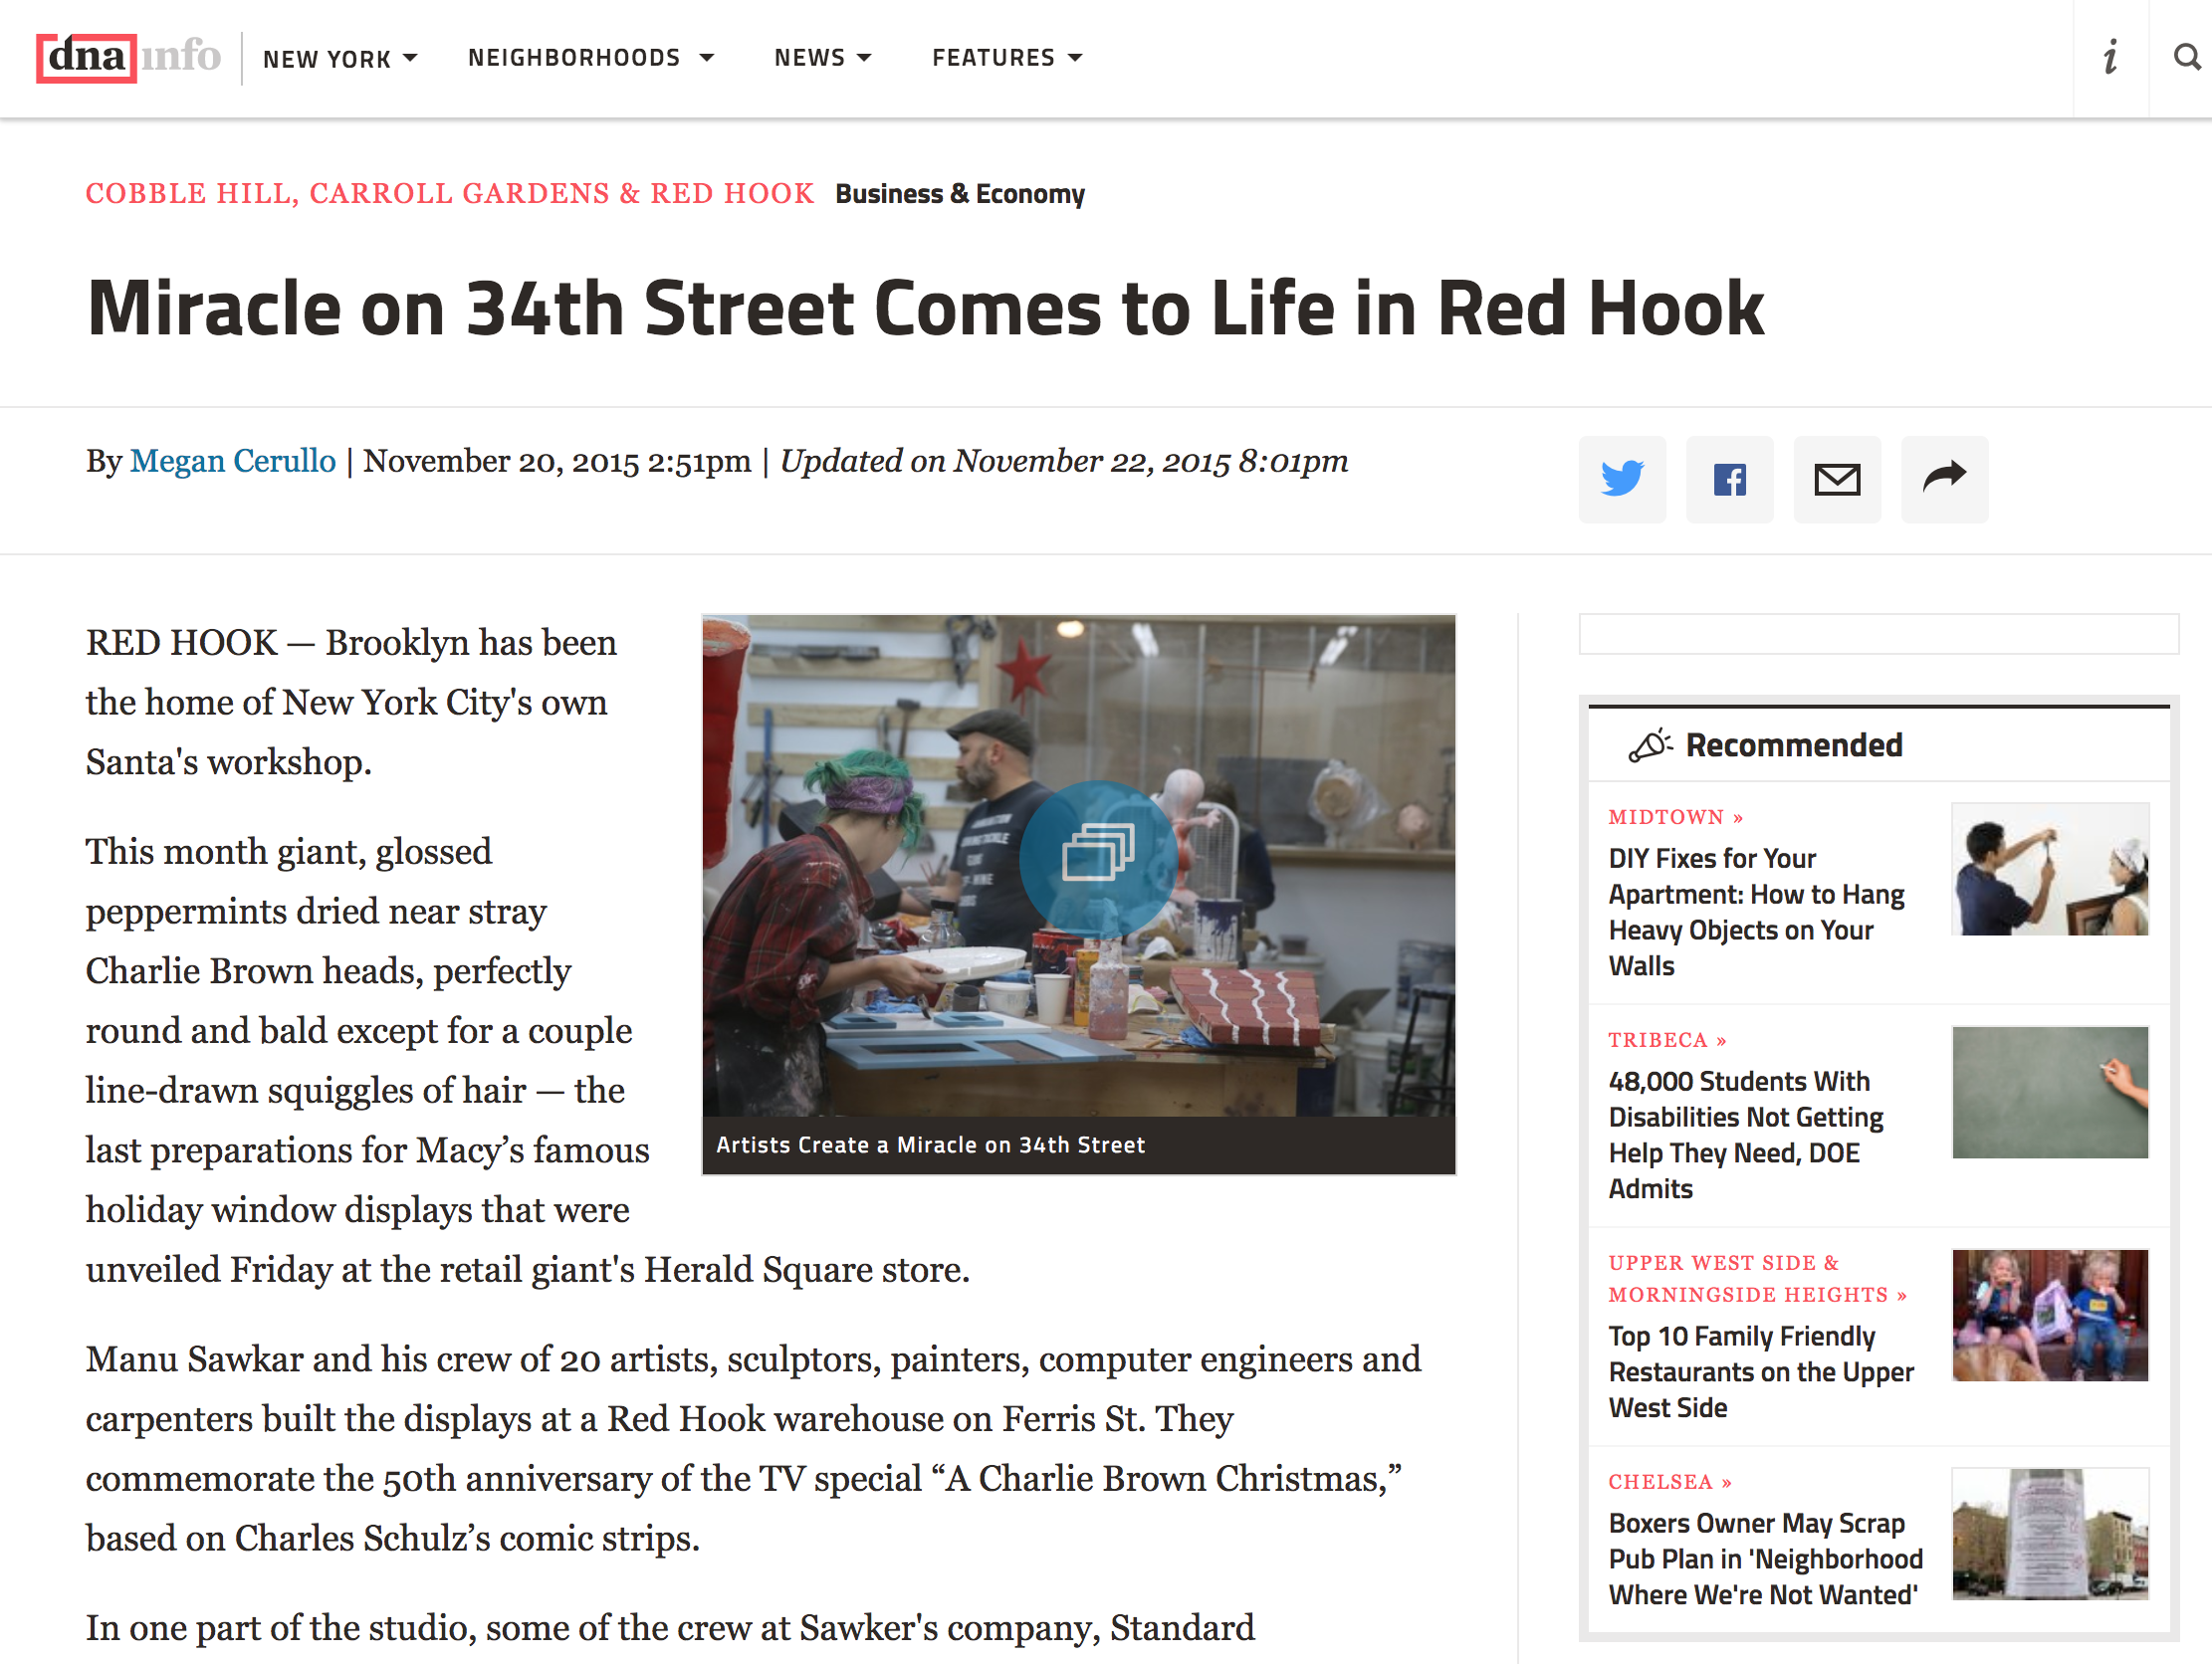 DNA Info - Miracle on 34th St. in Red Hook